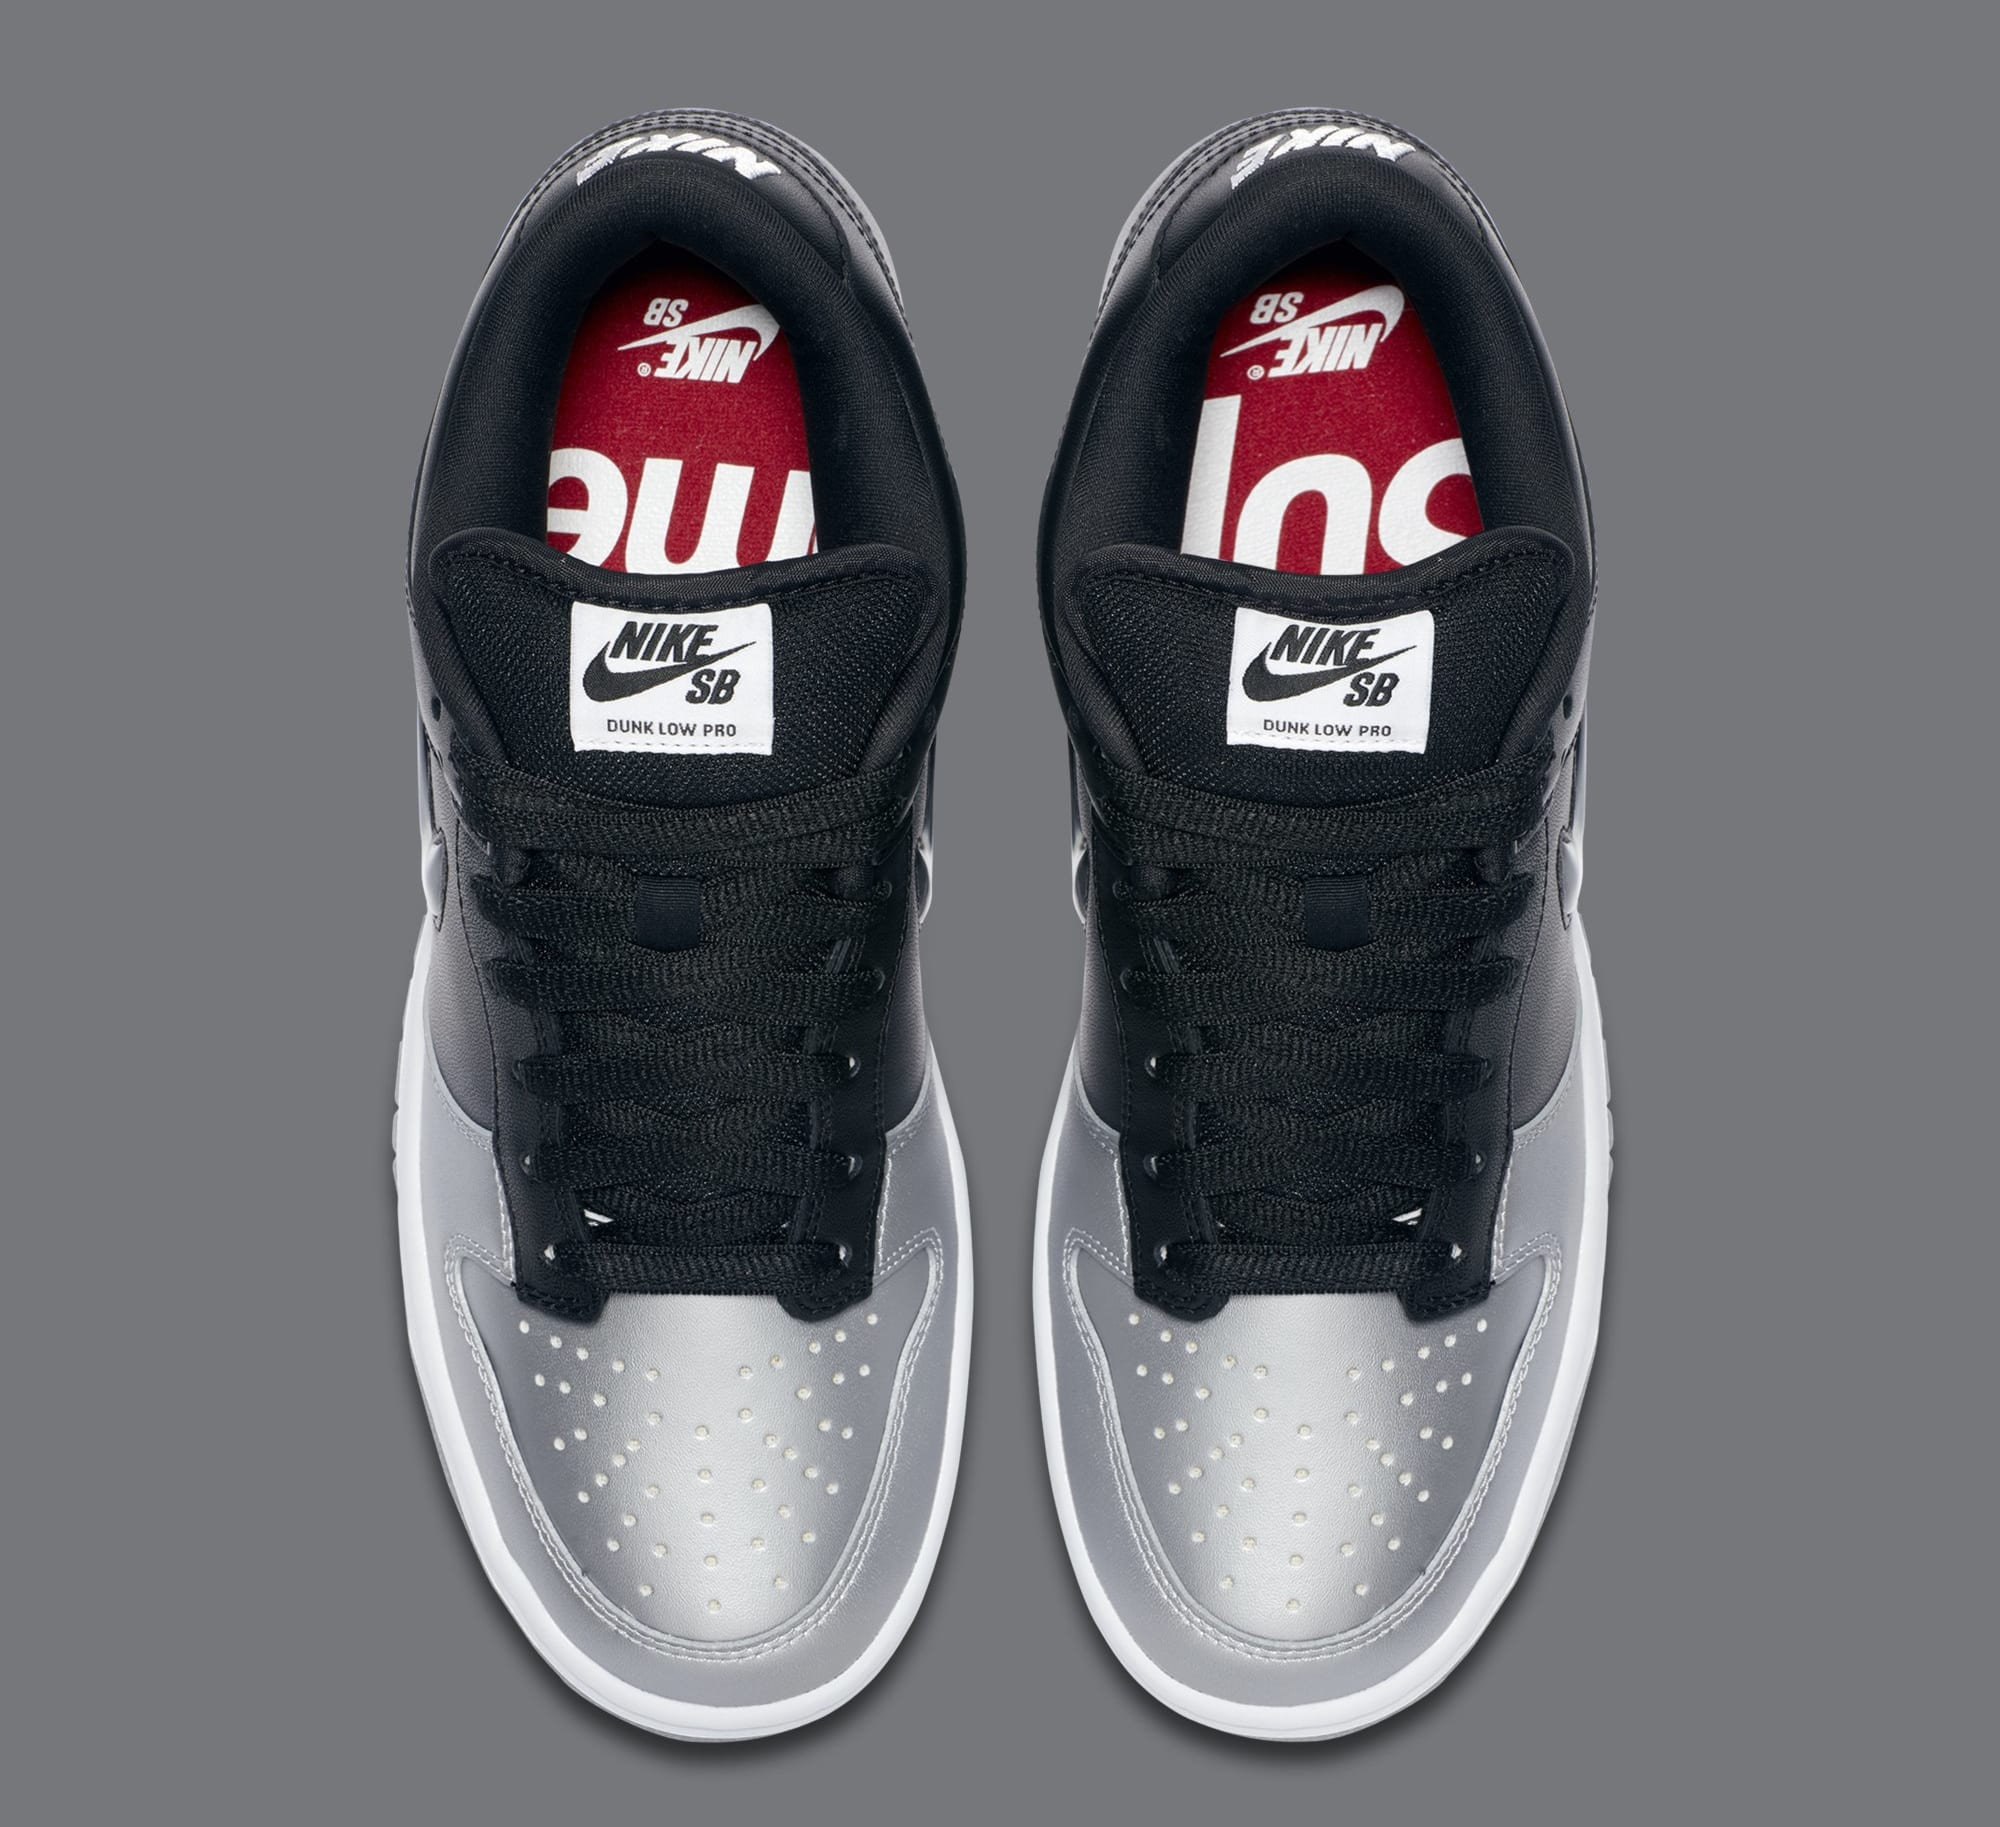 Supreme x Nike SB Dunk Low 'Metallic Silver/Metallic Silver/Black' CK3480-001 (Top)